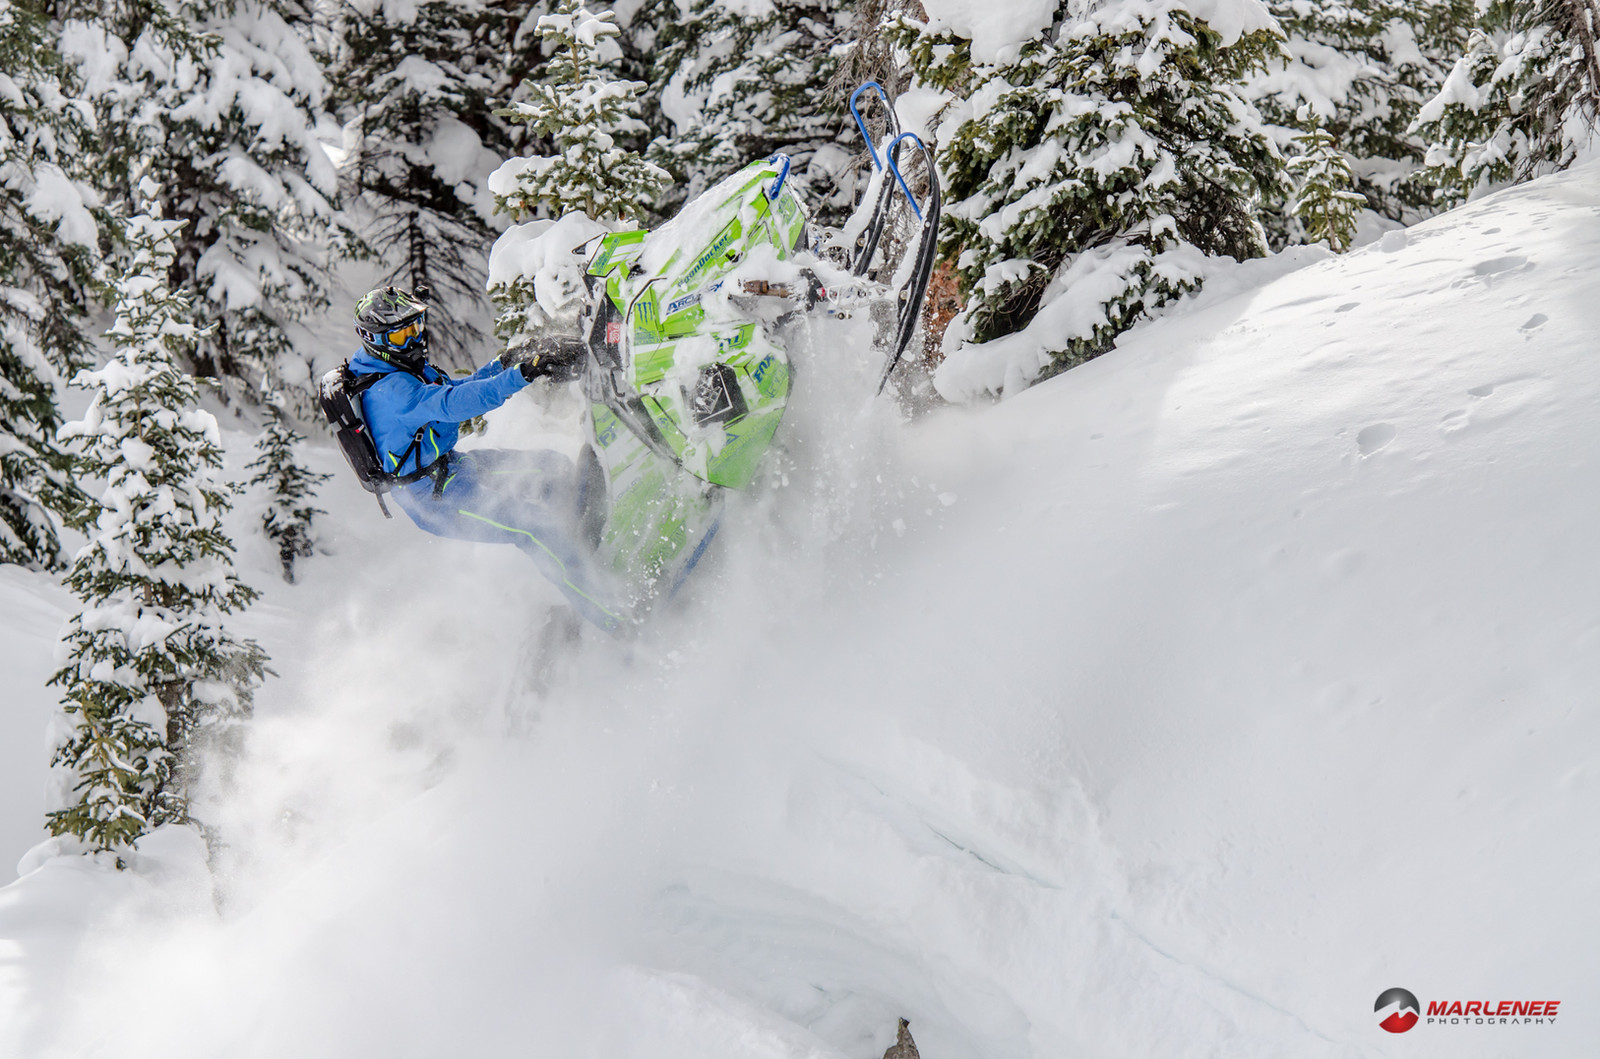 Burandt S Backcountry Adventure Photo Gallery